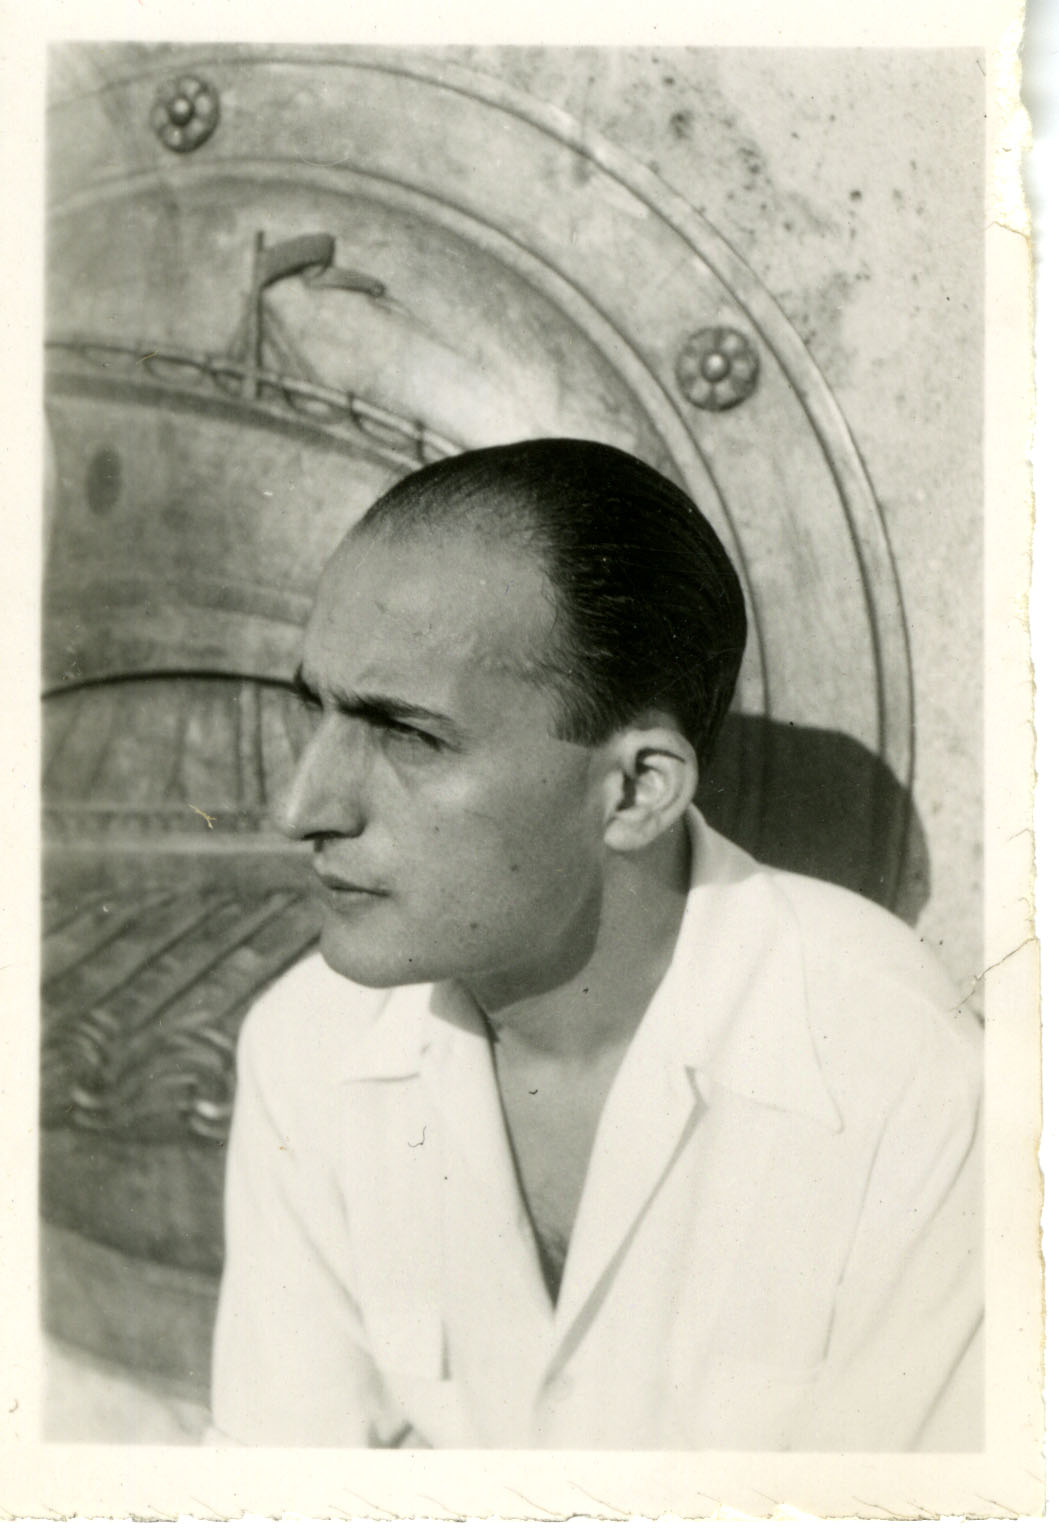 The poet at 28 years old (1939-40)